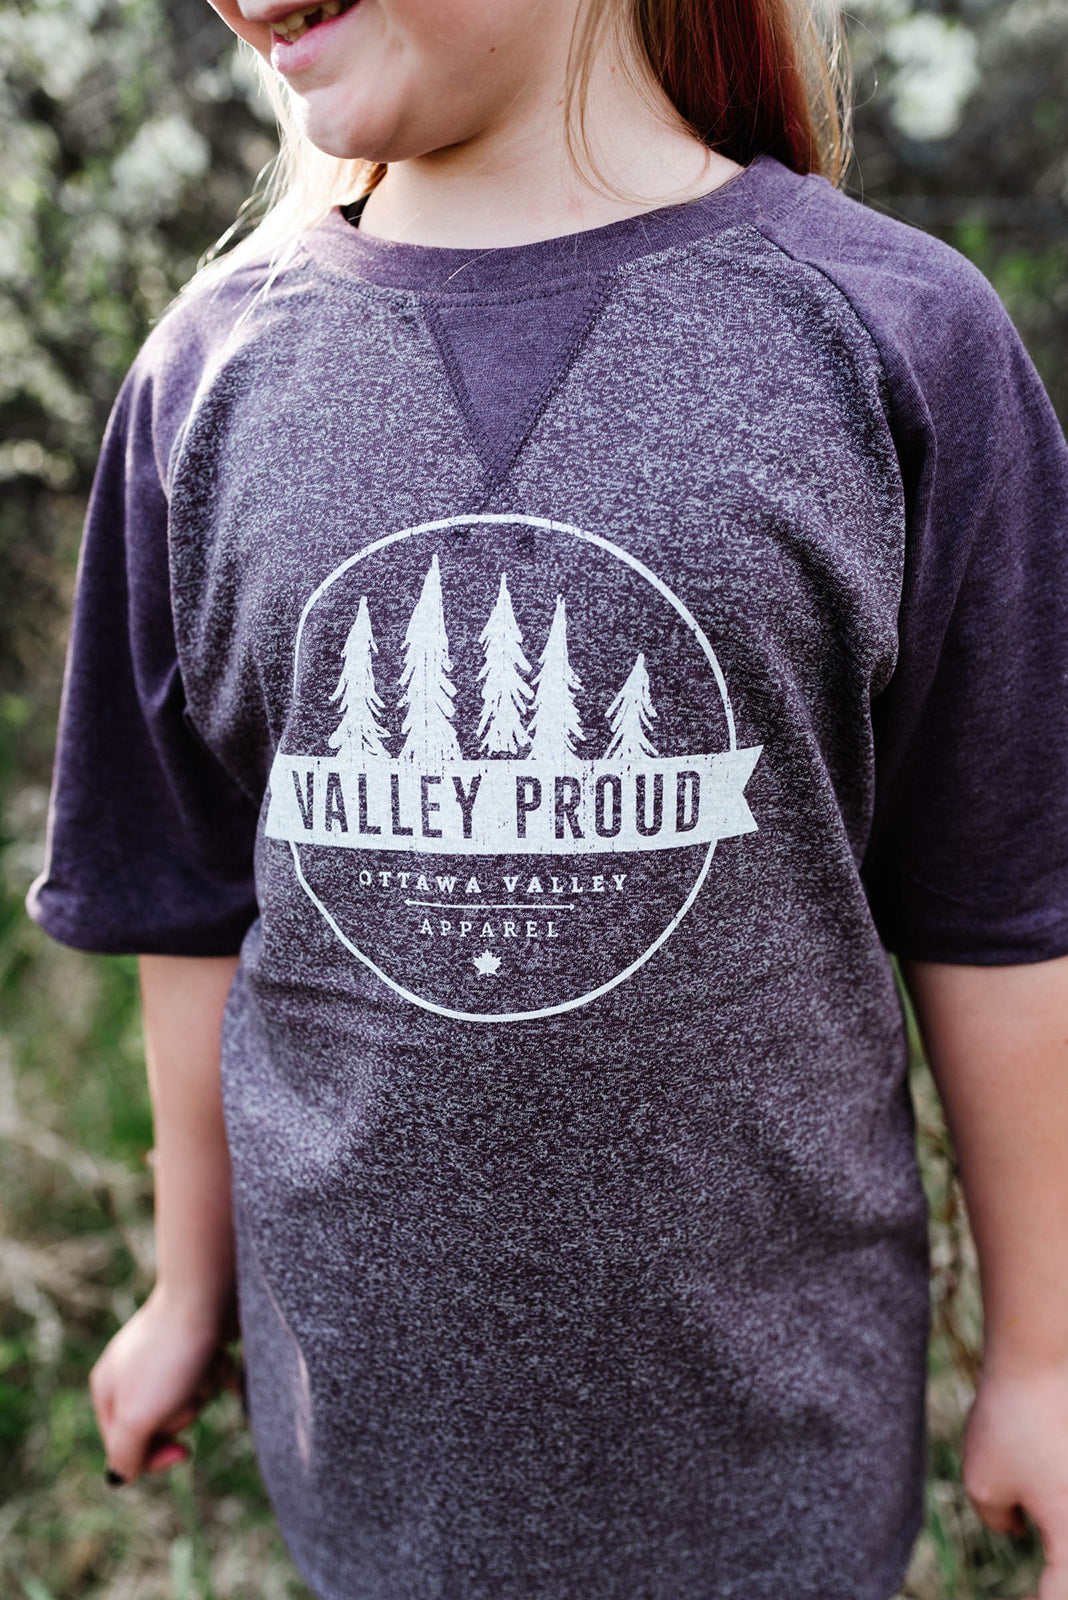 Valley Proud Youth Tee - Purple